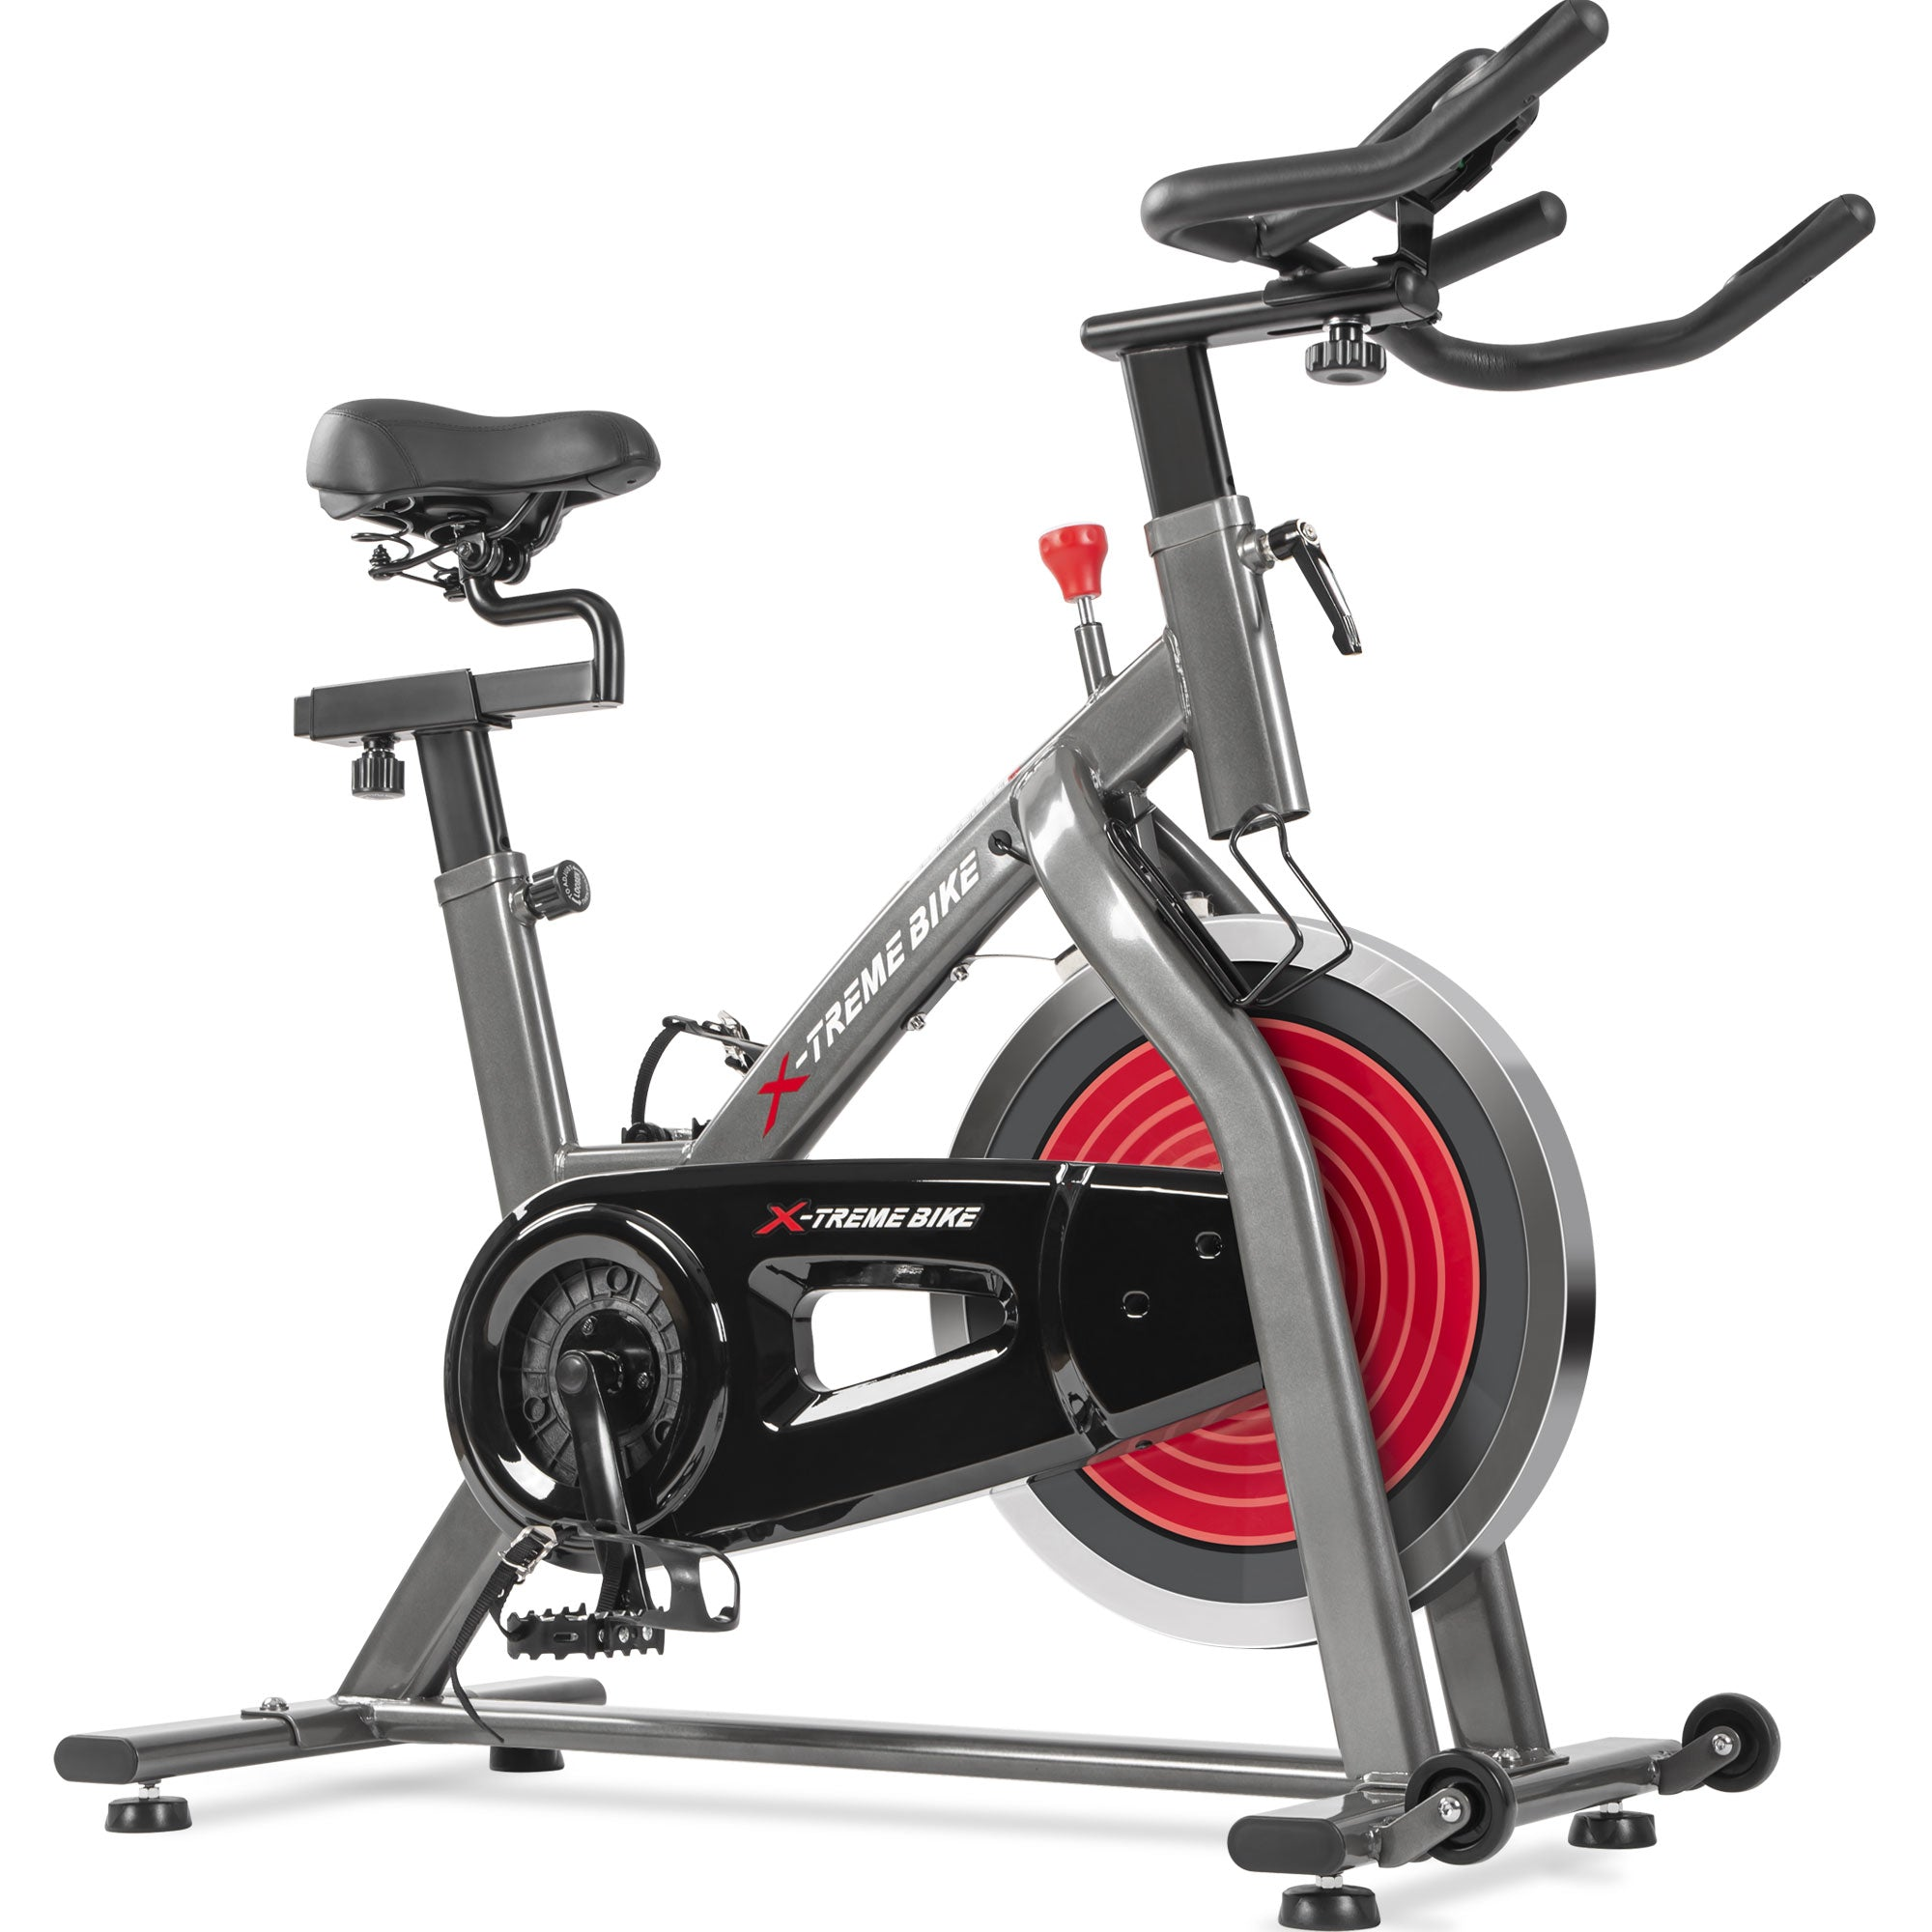 Indoor Cycling Bike With 4-way Adjustable Handlebar & Seat, Lcd Monitor For Home Cardio Workout Exercise Bike